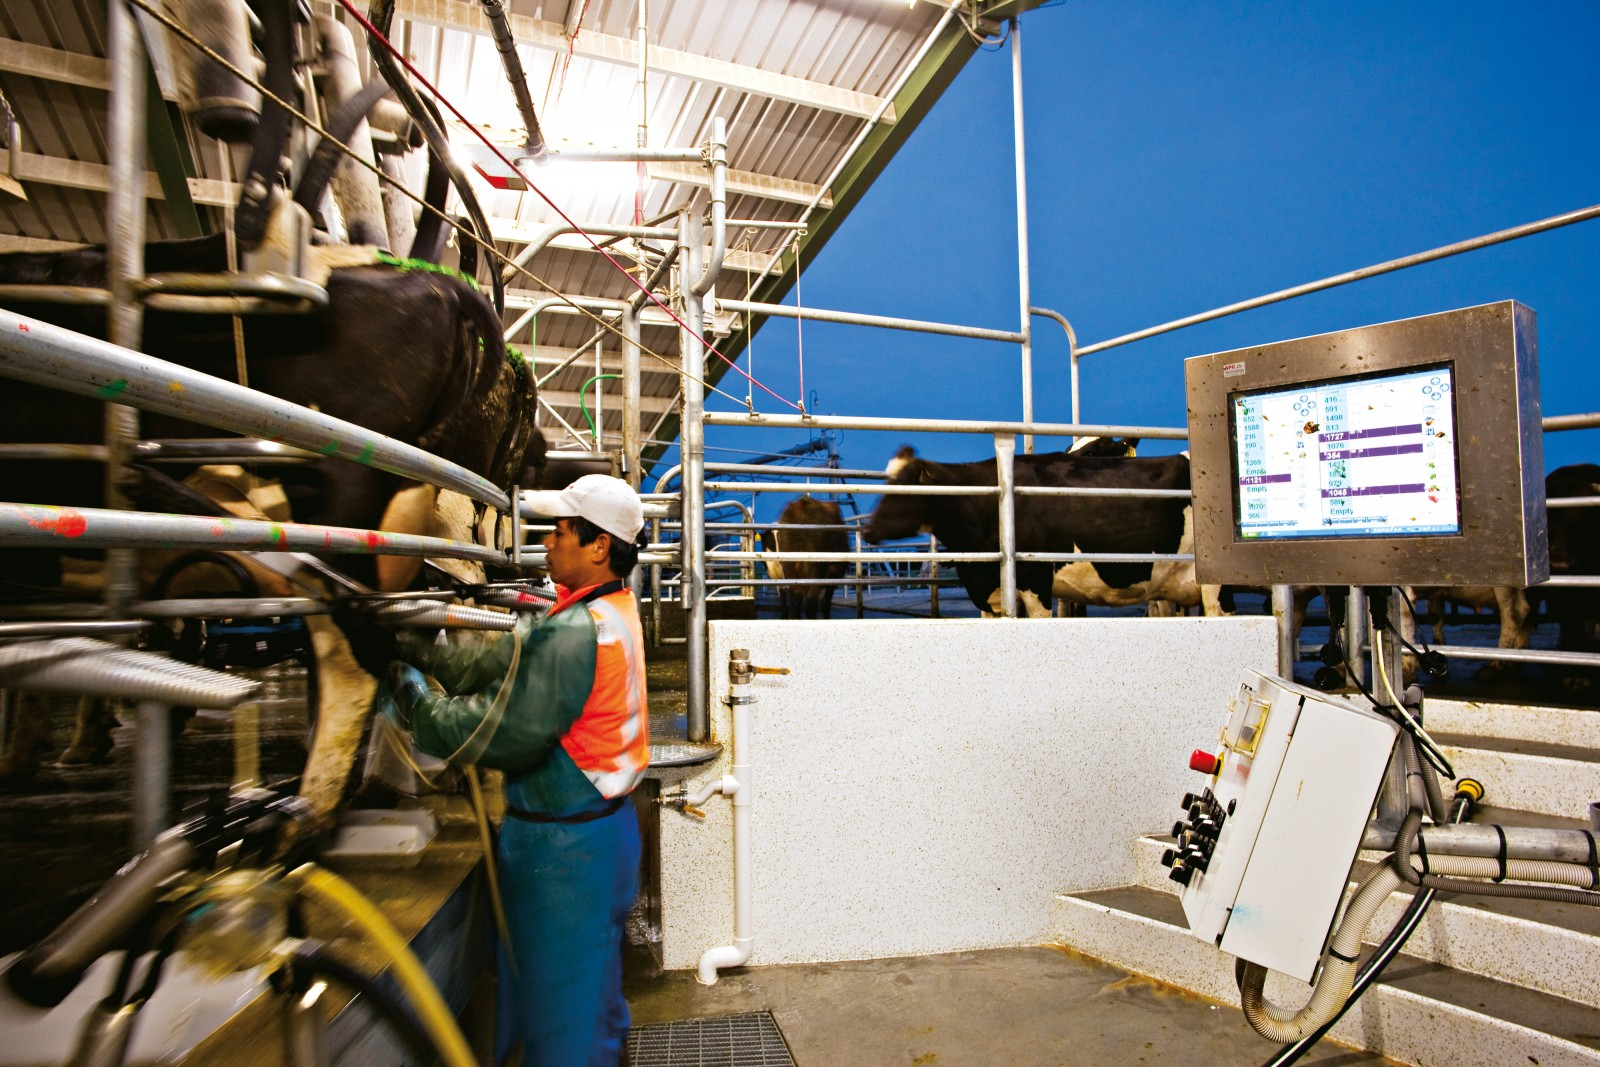 Filipino farm worker Rod Tawapao does the rounds of the rotary milking shed at Johnson's farm in Westerfield. He moved to New Zealand with his wife and two-year-old child chasing the working opportunities offered by Canterbury's white gold. But with the advent of fully automated robotic milking sheds, his job is likely to change rapidly in coming years.